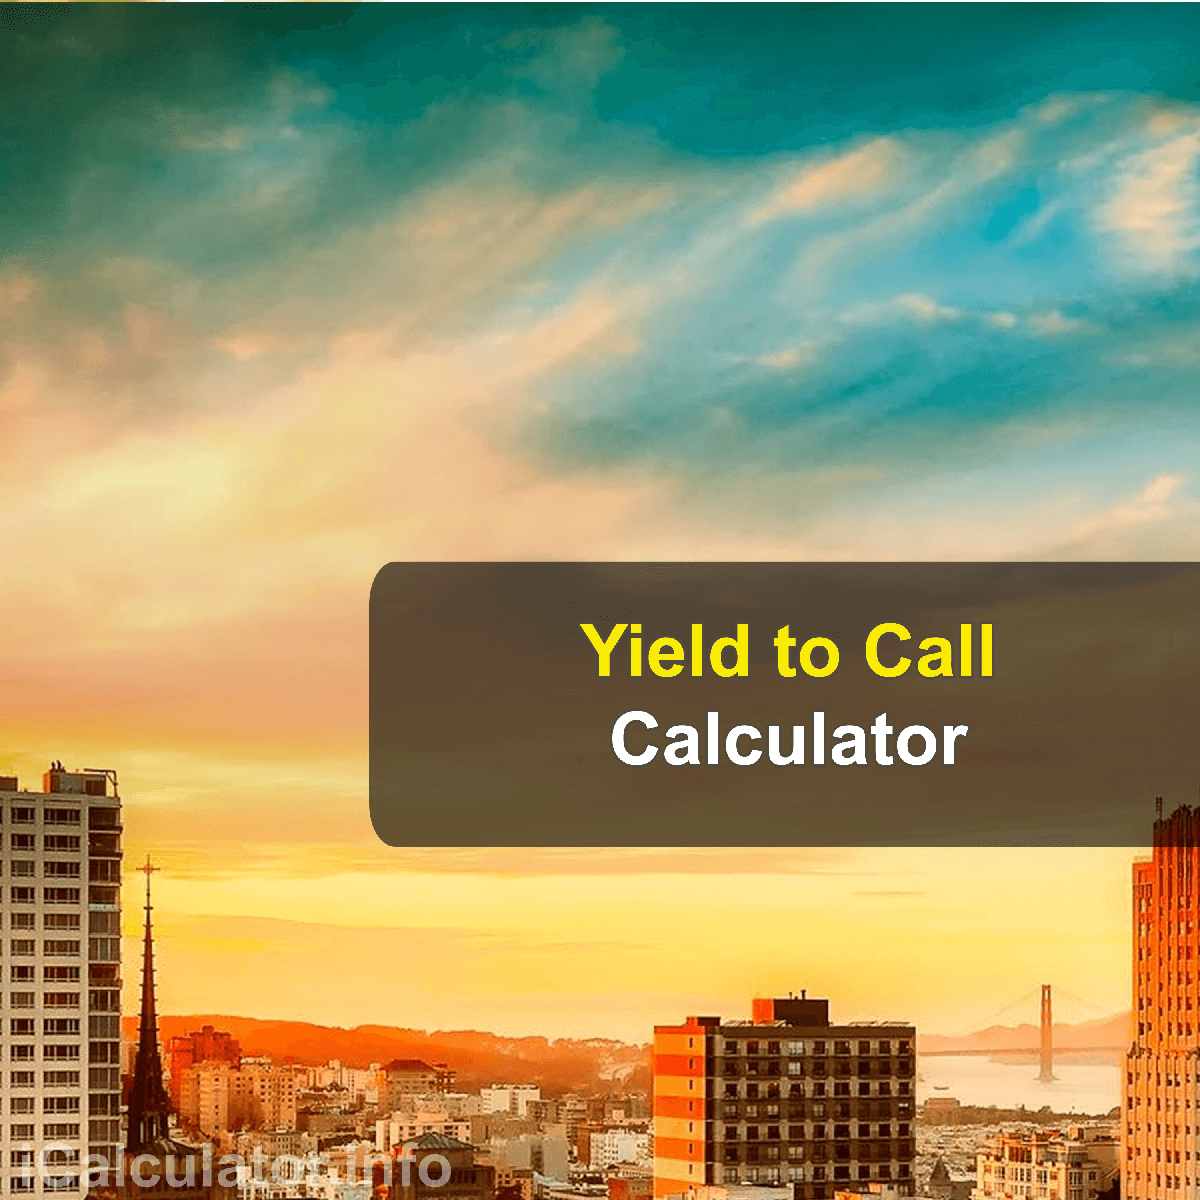 Yield to Call Calculator. This image provides details of how to calculate Yield to Call using a calculator and notepad. By using the Yield to Call formula, the Yield to Call Calculator provides a true calculation of the yield to call on your bonds with several parameters by editing the details to get the results for a different calculation